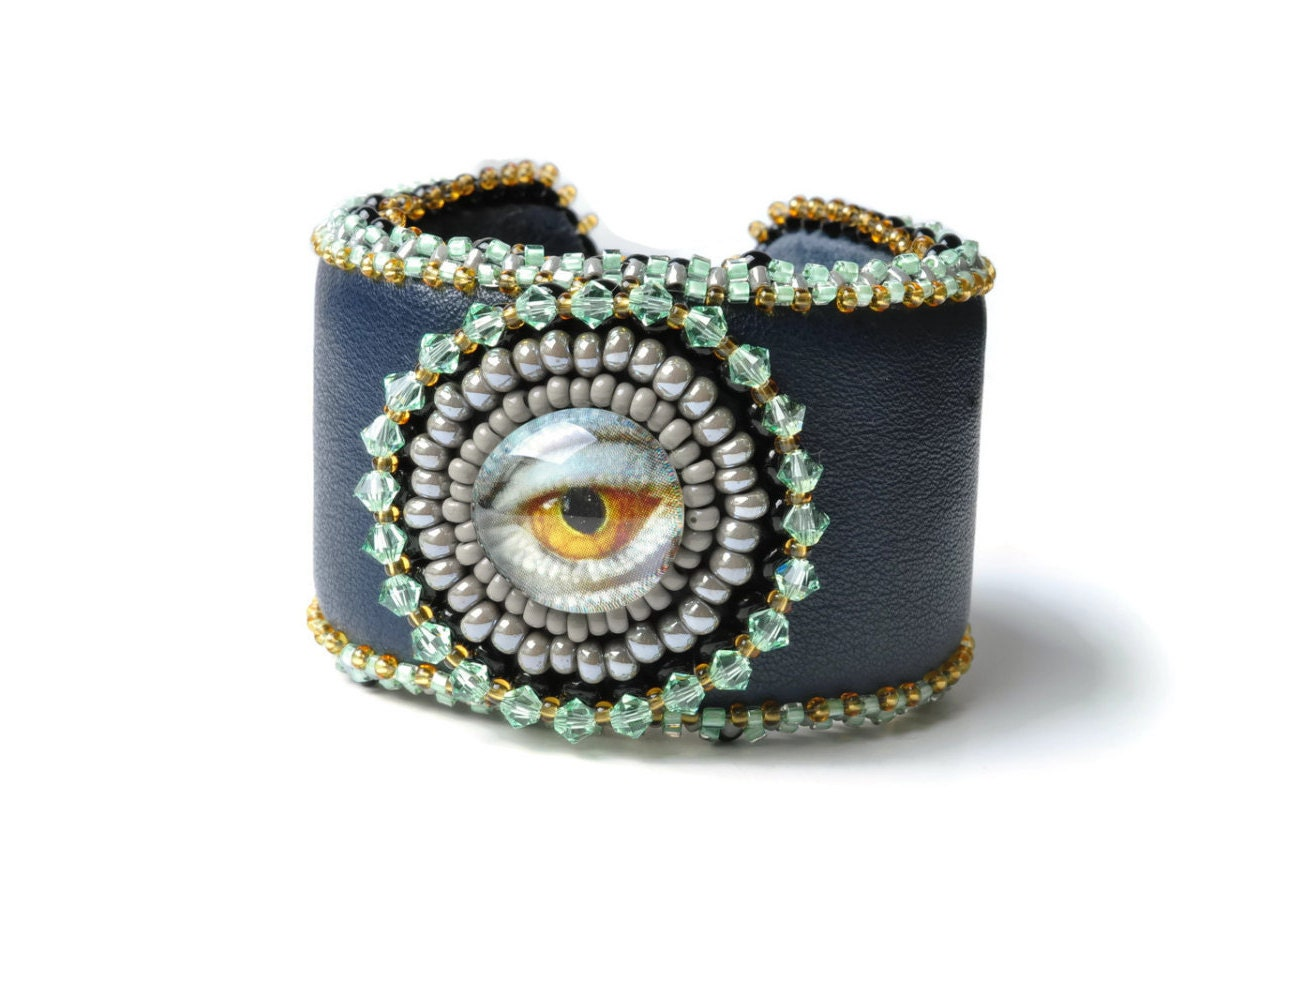 Eye leather crystals bead embroidery bracelet cuff statement